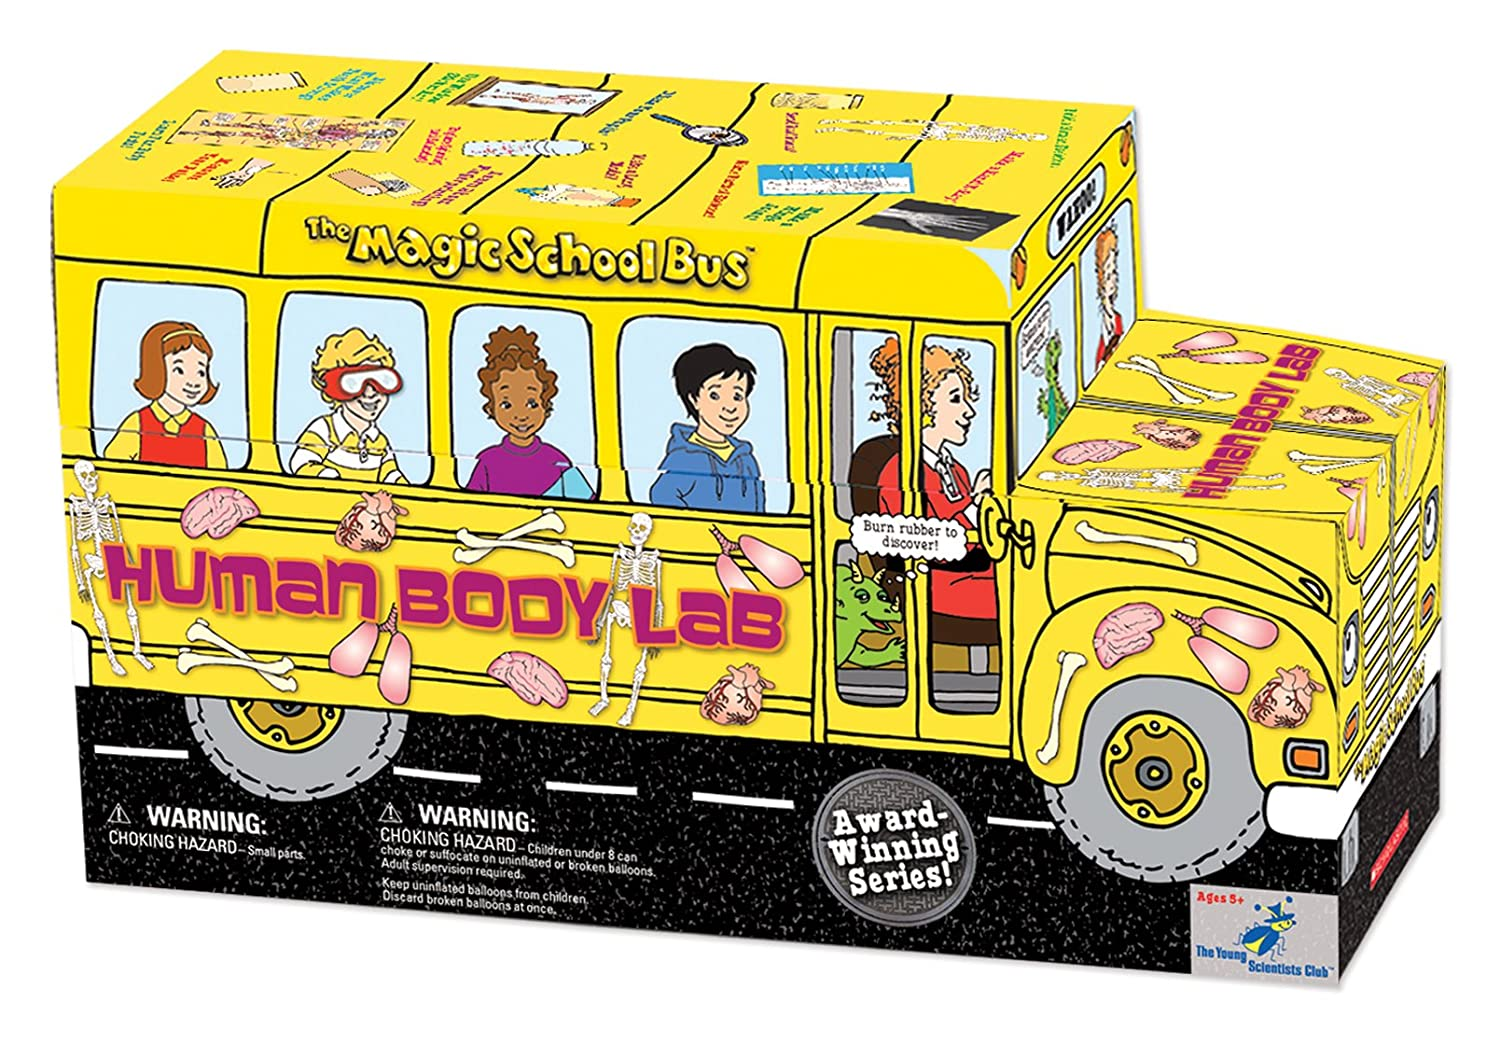 Magic school bus coloring pictures - Magic School Bus Coloring Pictures 57